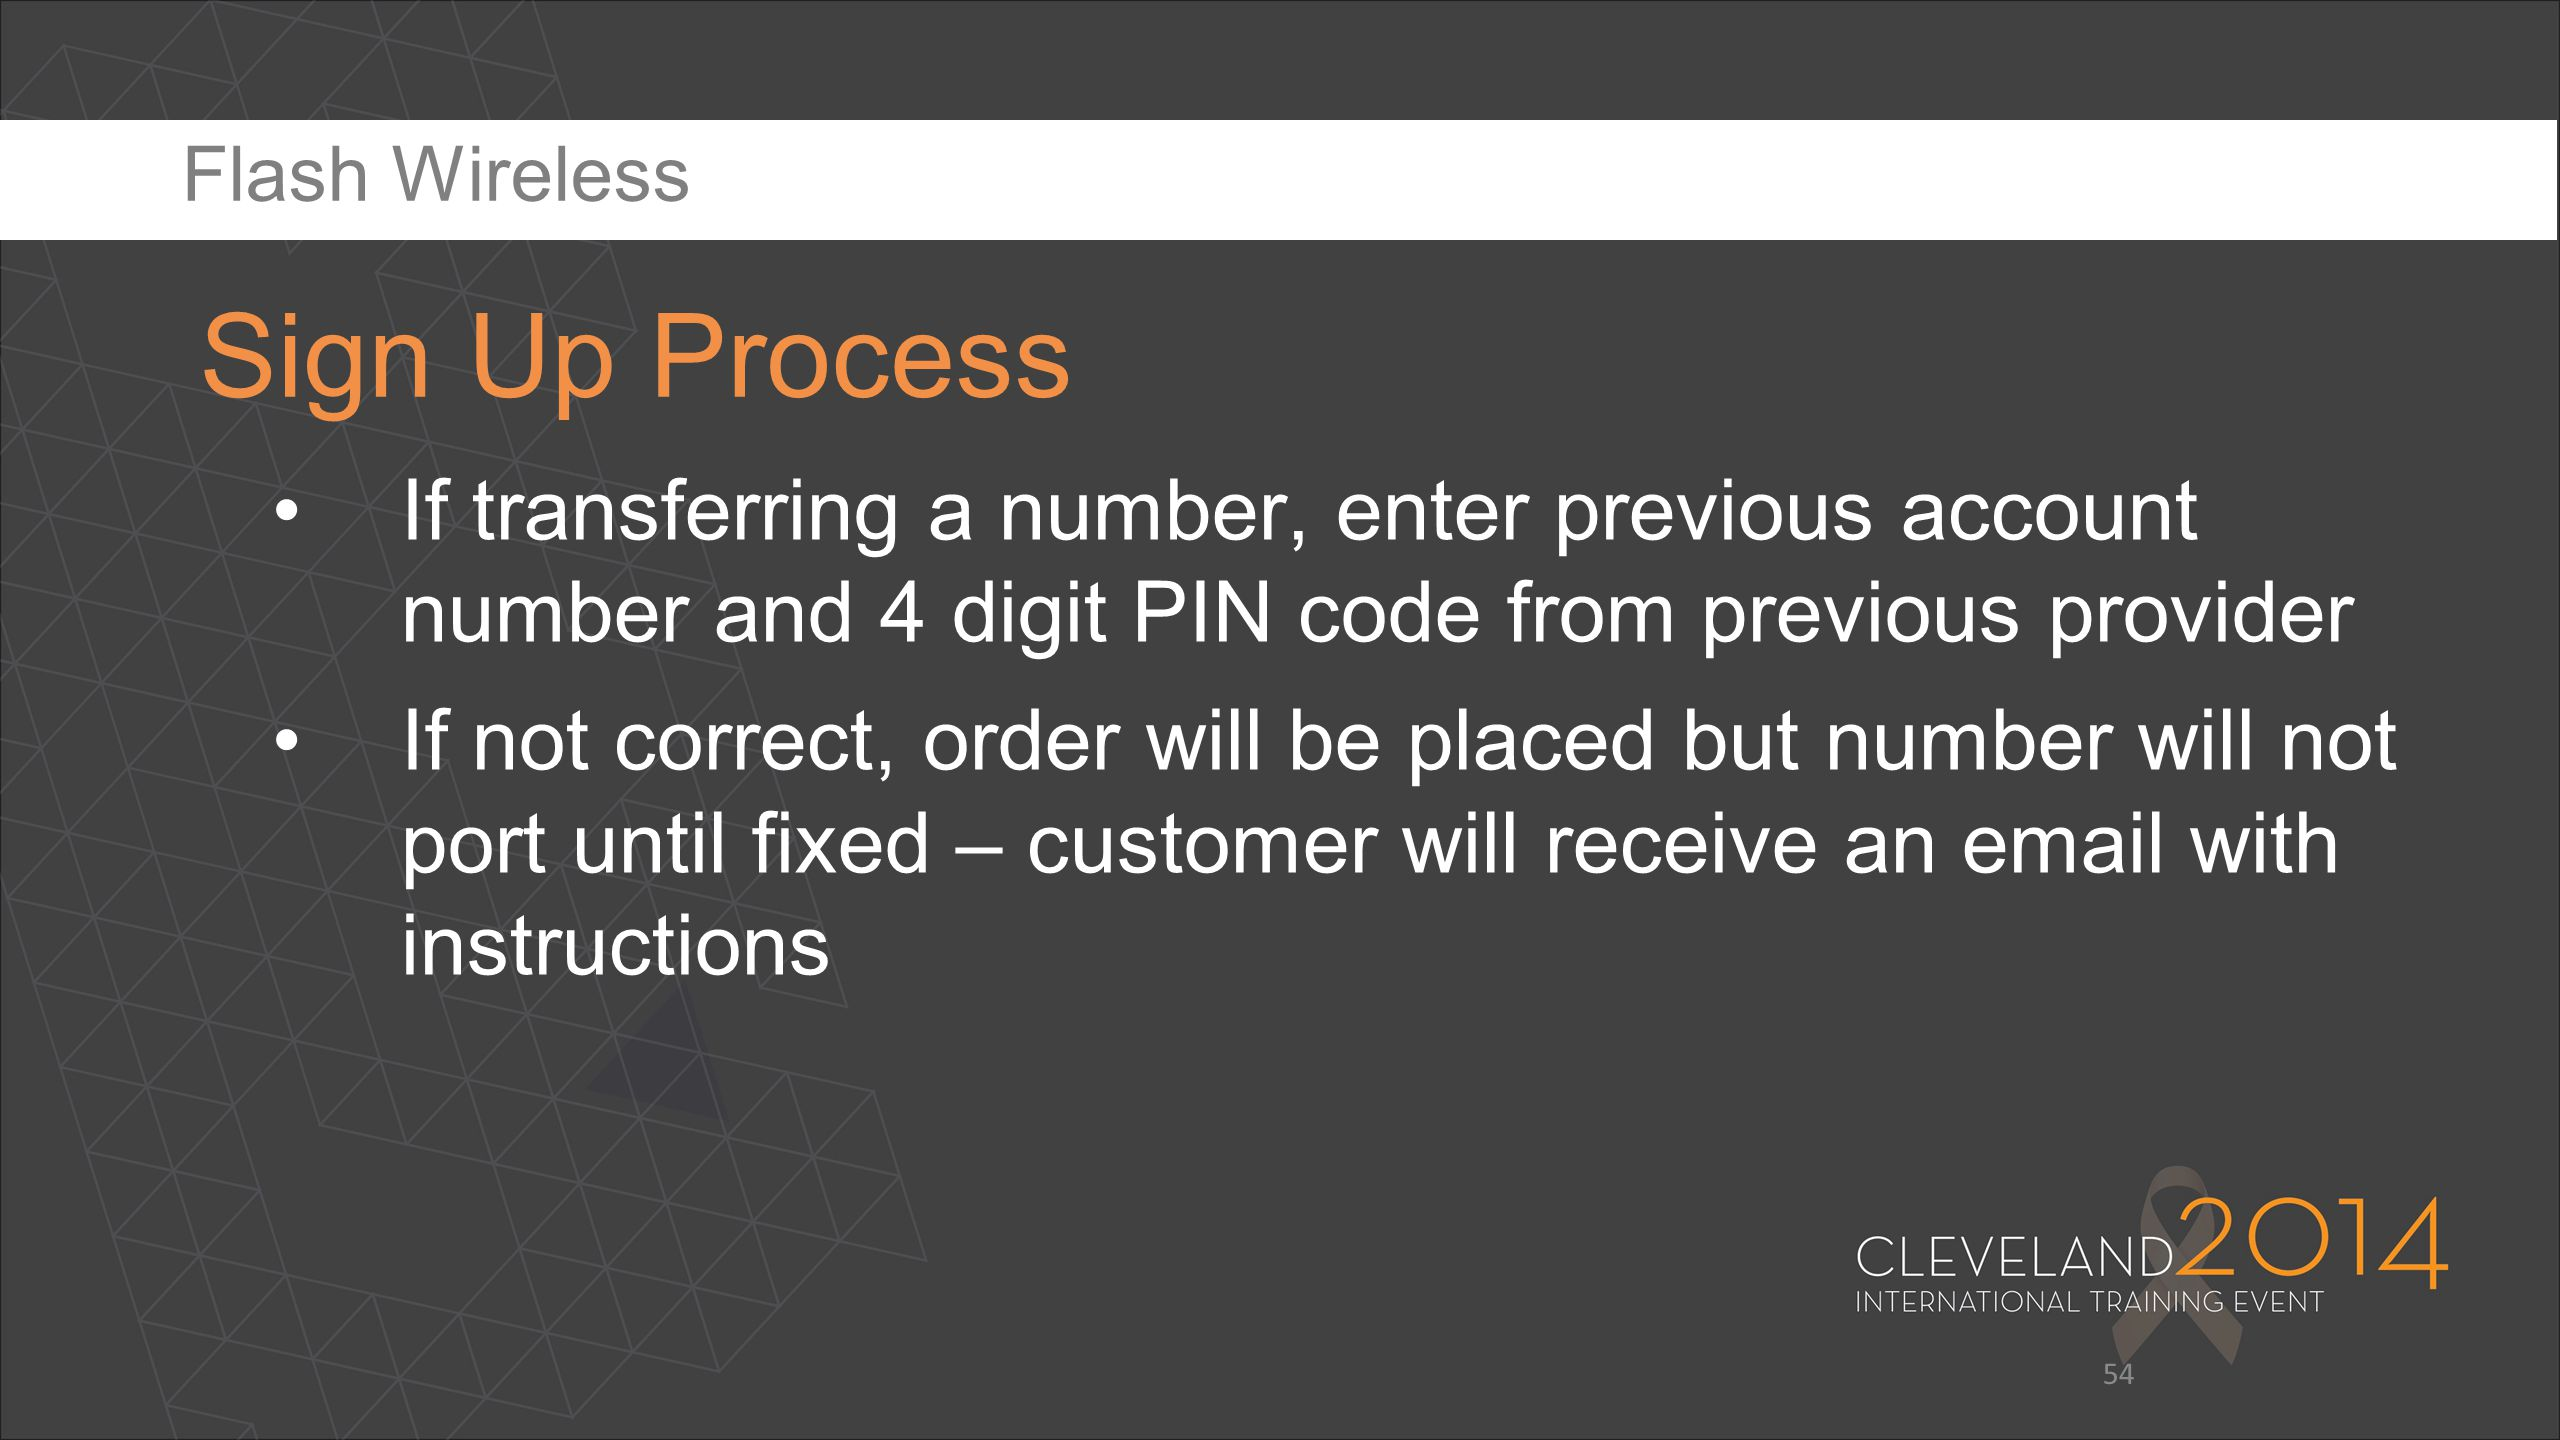 Flash Wireless Sign Up Process. If transferring a number, enter previous account number and 4 digit PIN code from previous provider.